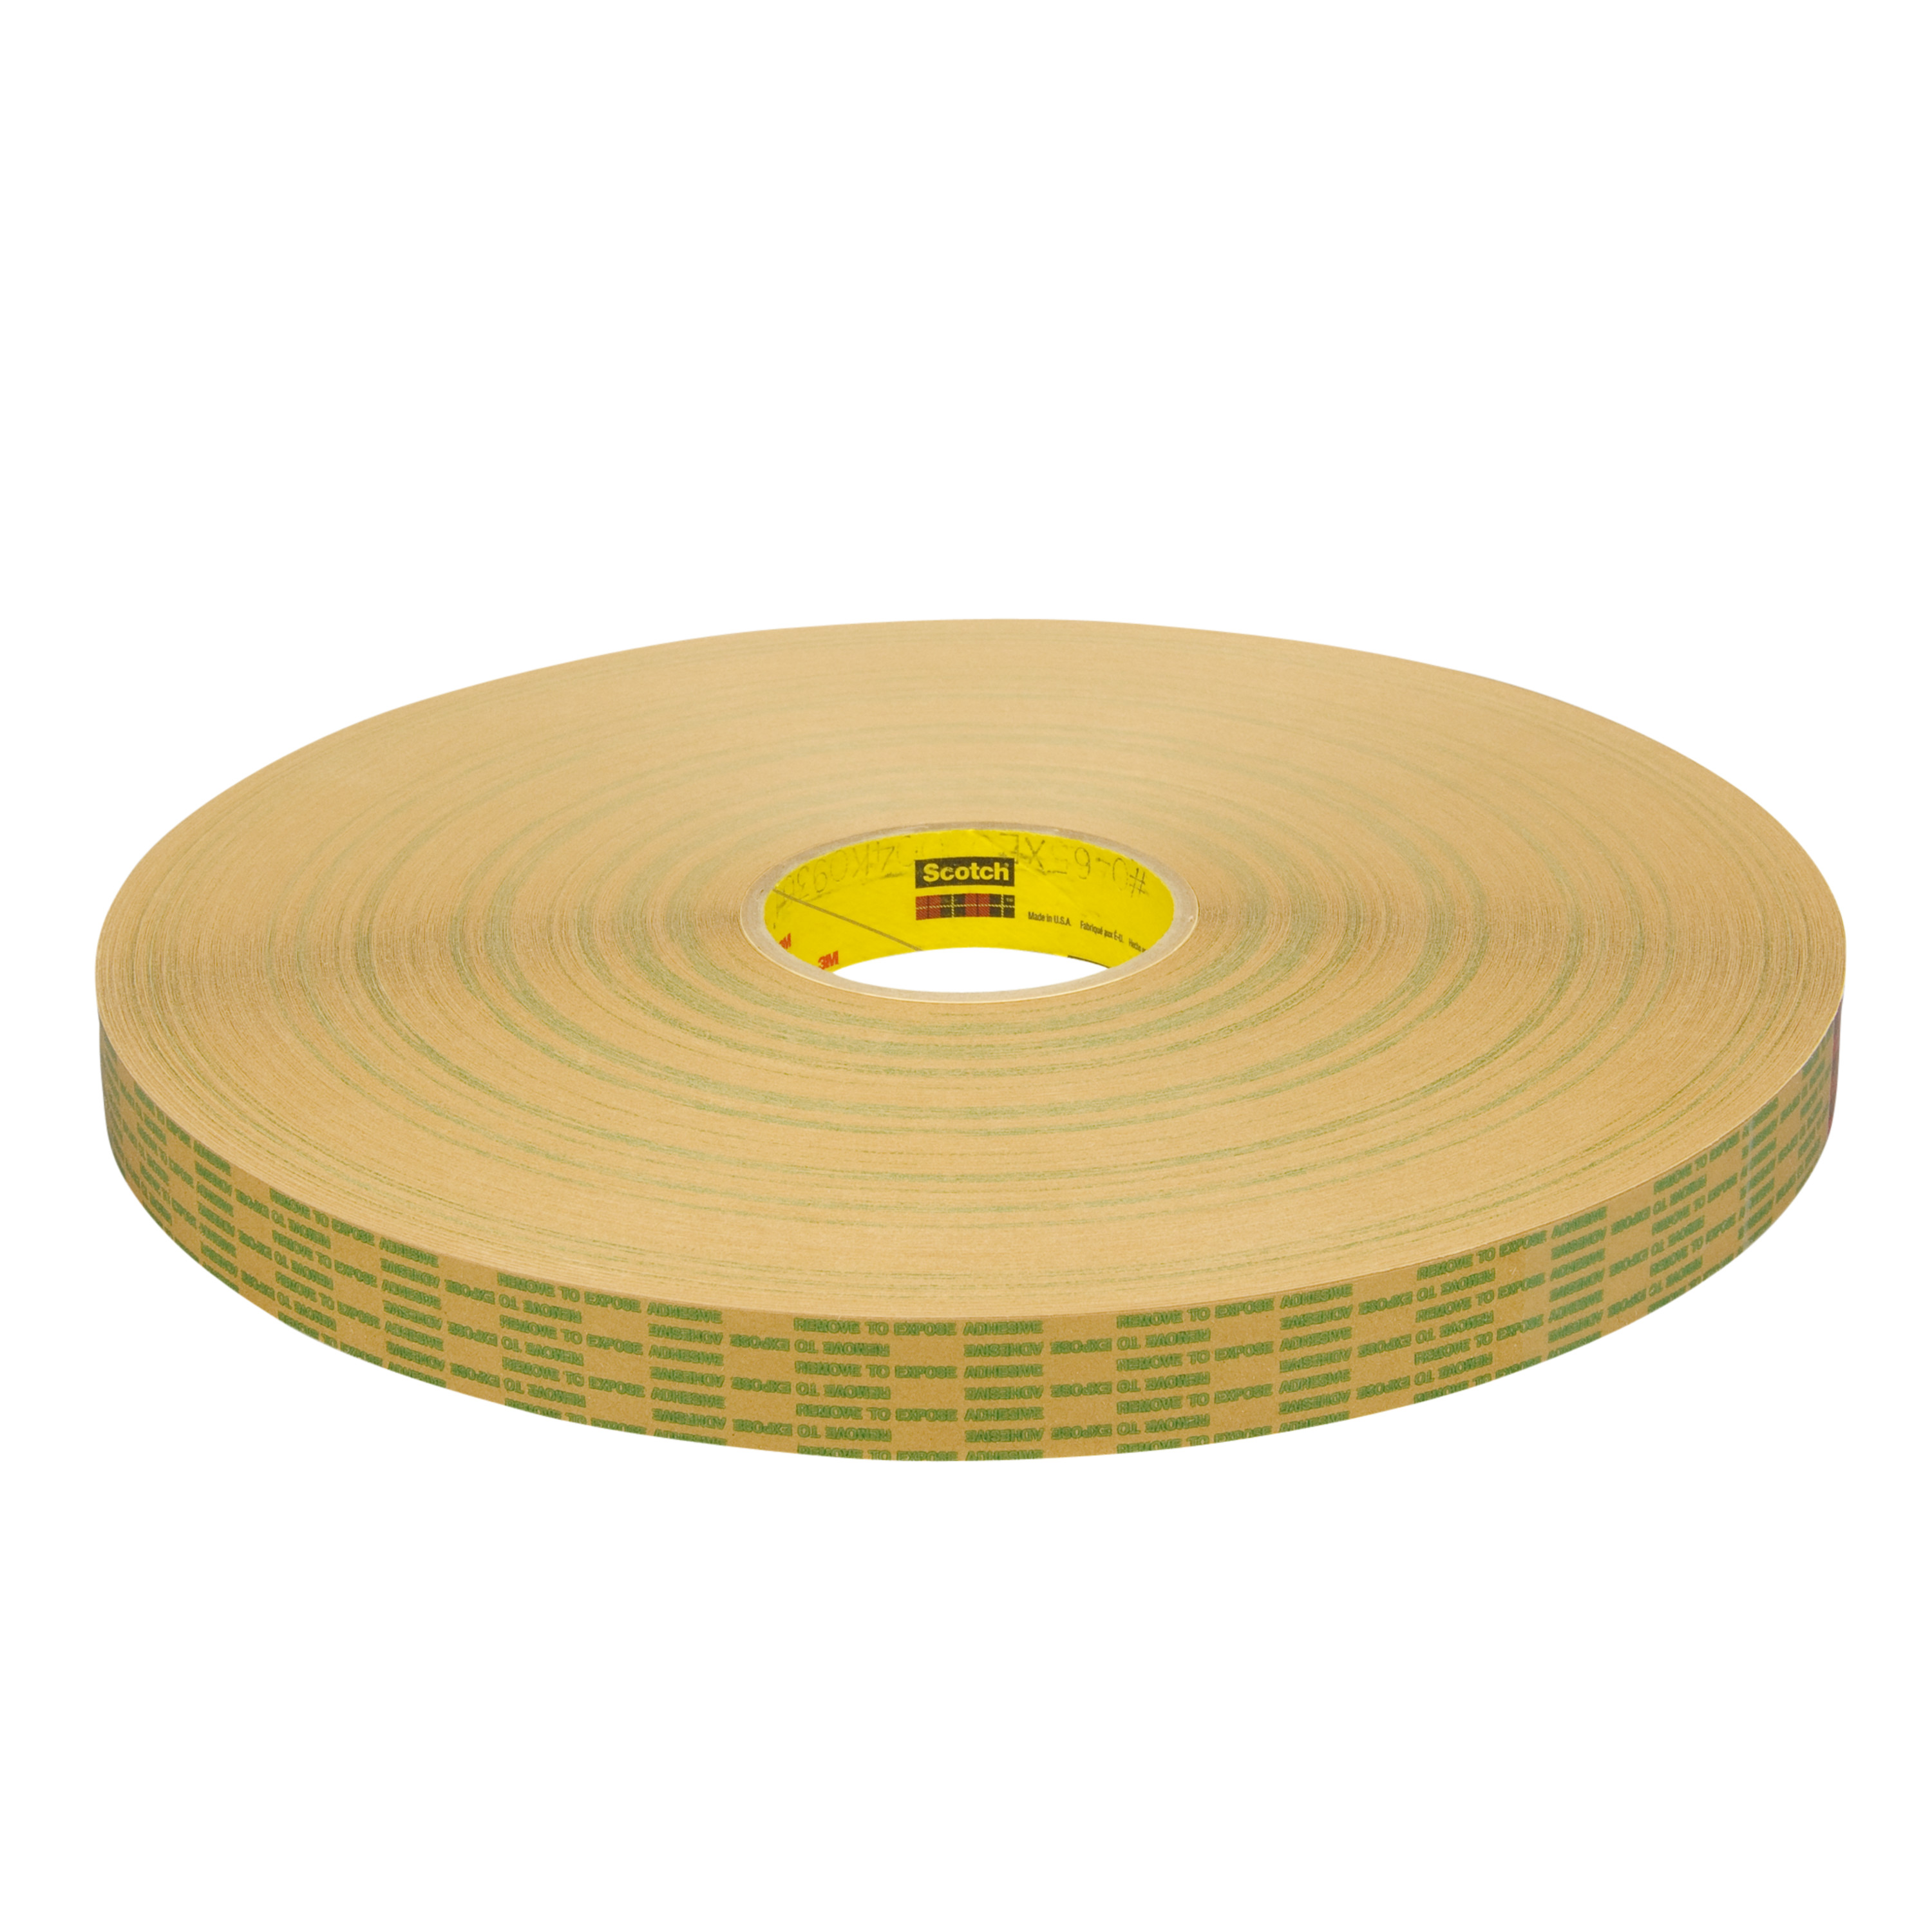 3M™ Adhesive Transfer Tape Extended Liner 465XL, Translucent, 1 in x 600 yd, 2 mil, 9 per case